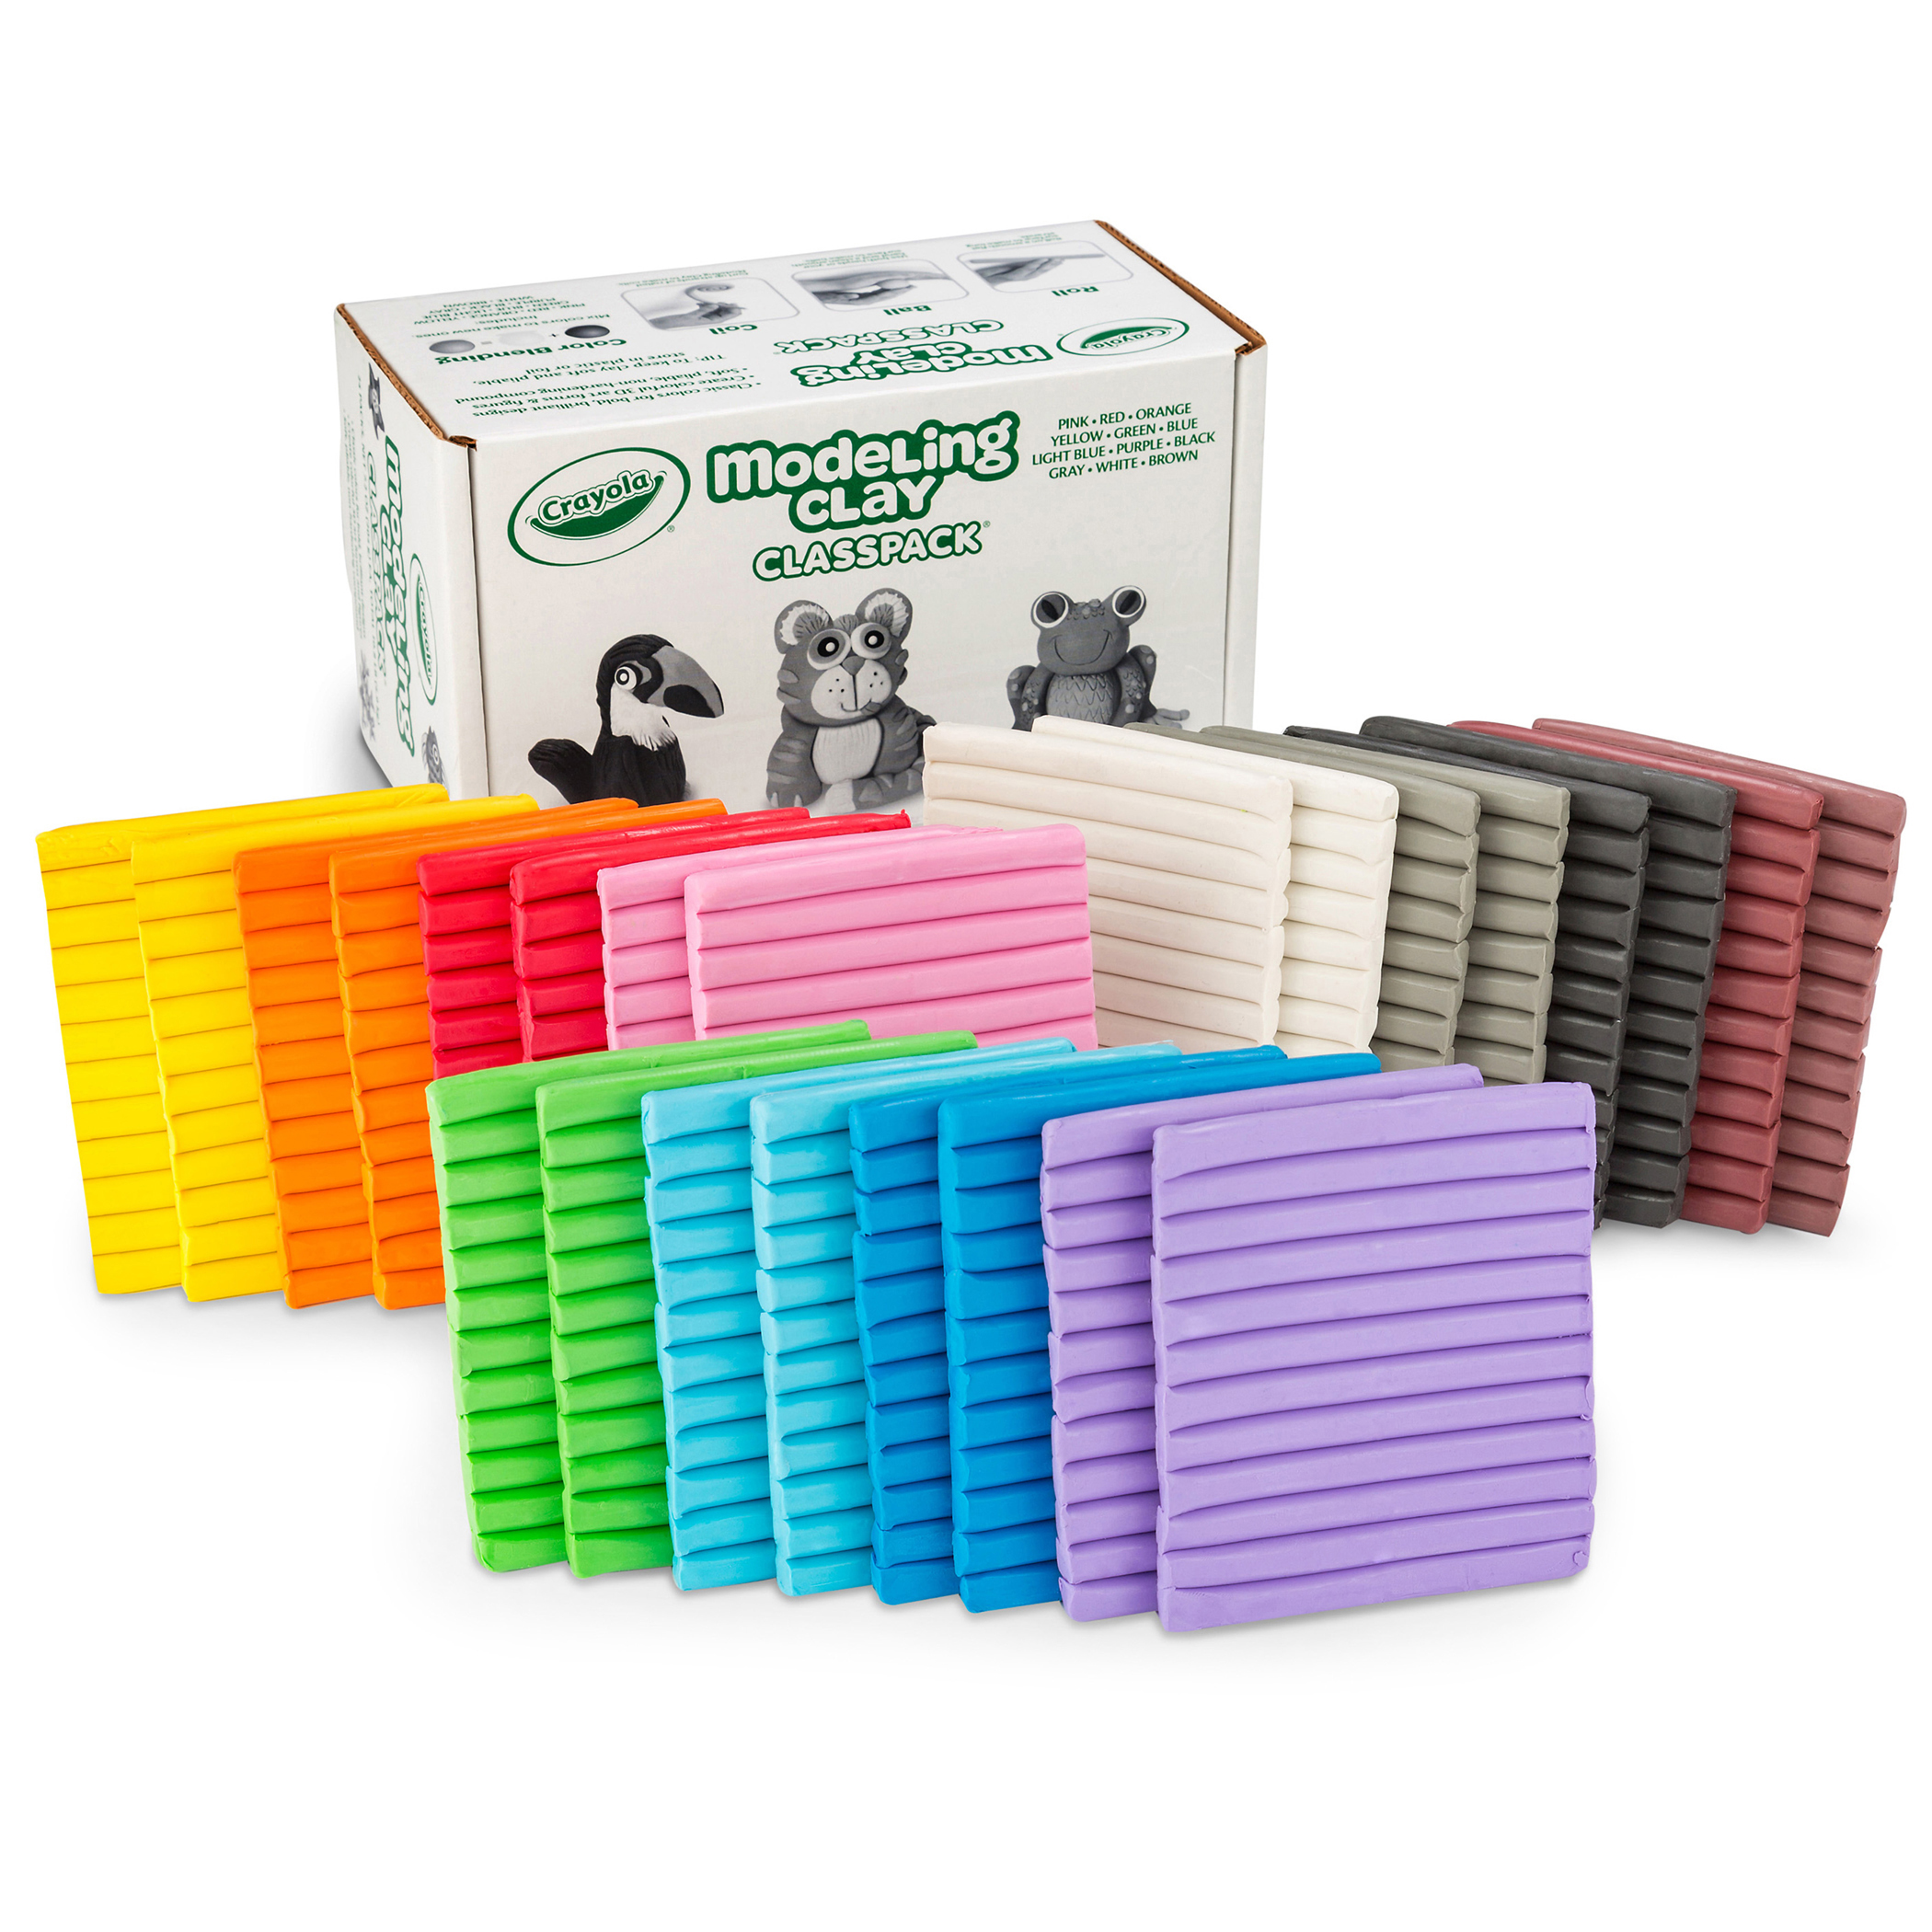 Crayola® Modeling Clay Classpack, Assorted Colors, Set of 24